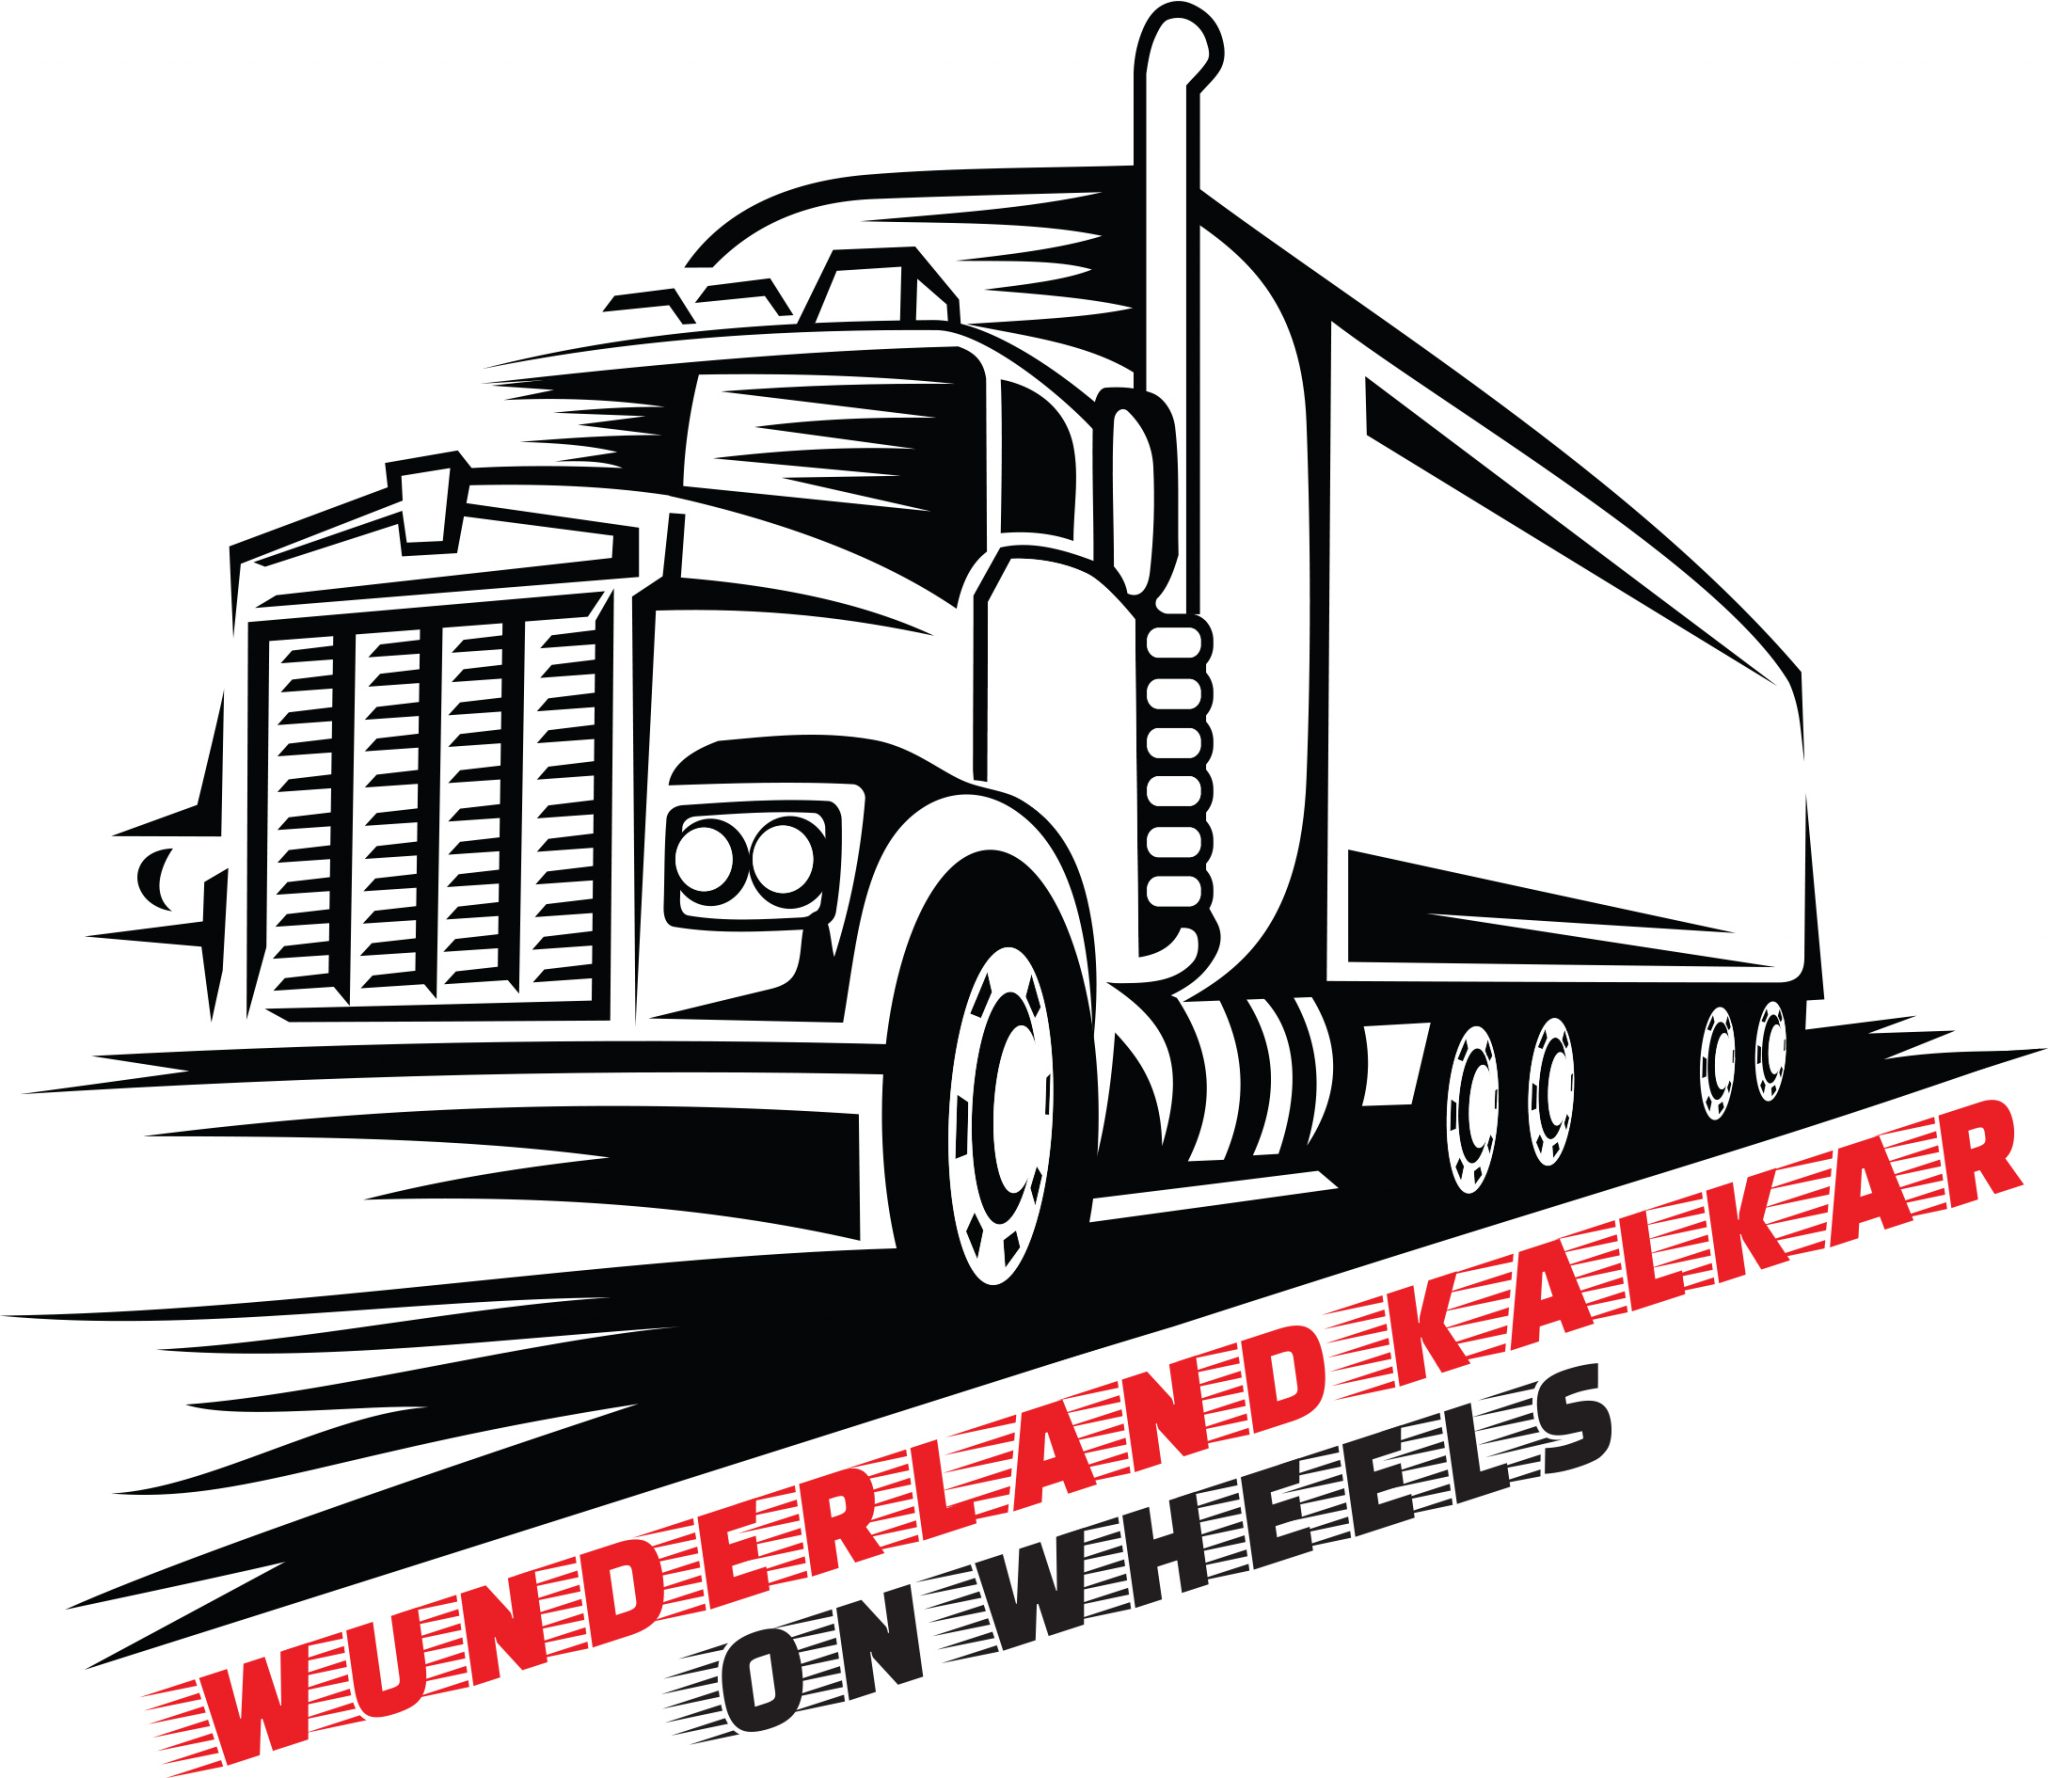 Wunderland Kalkar On Wheels